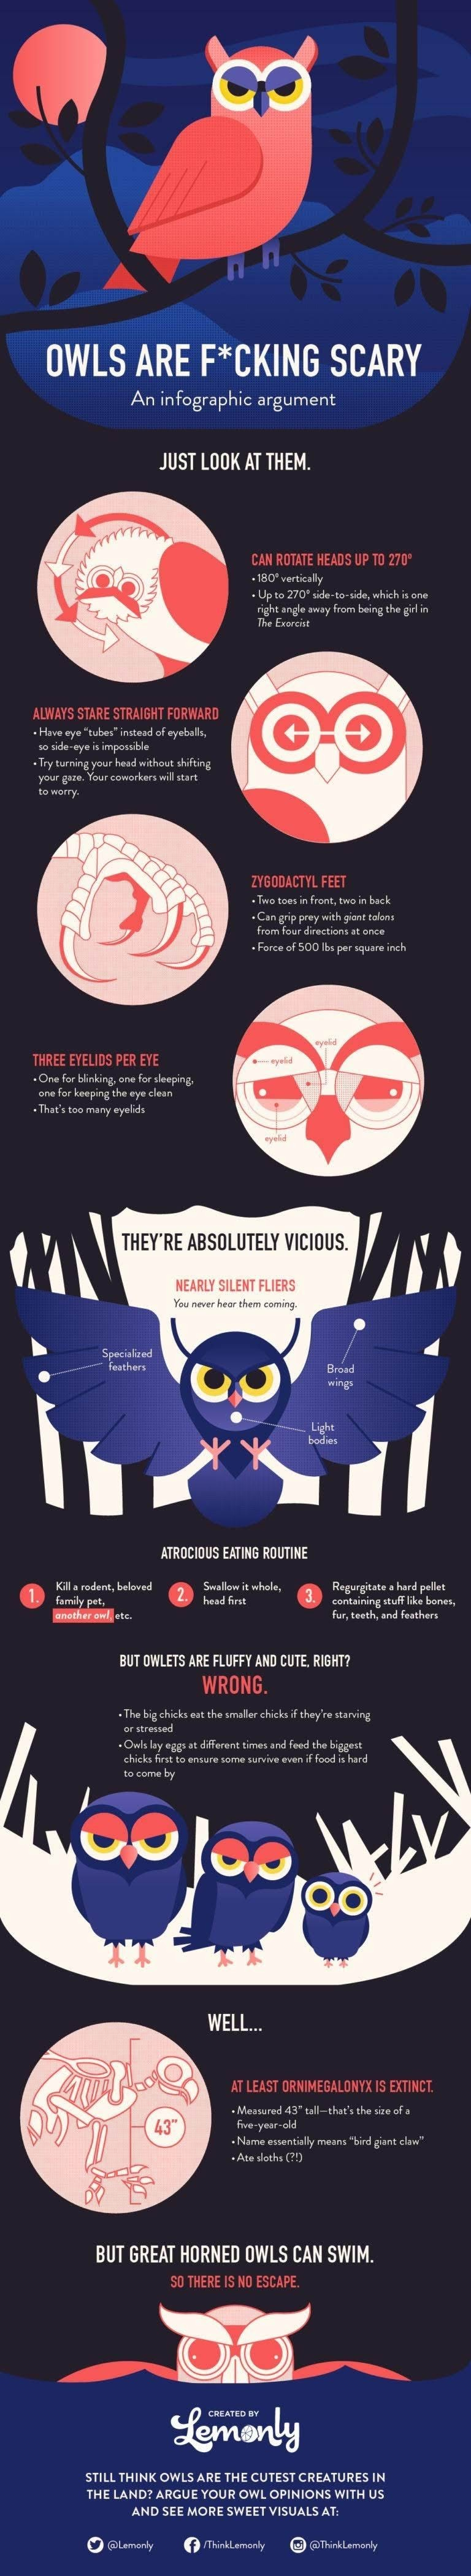 OWLS is a scary argument #infographic